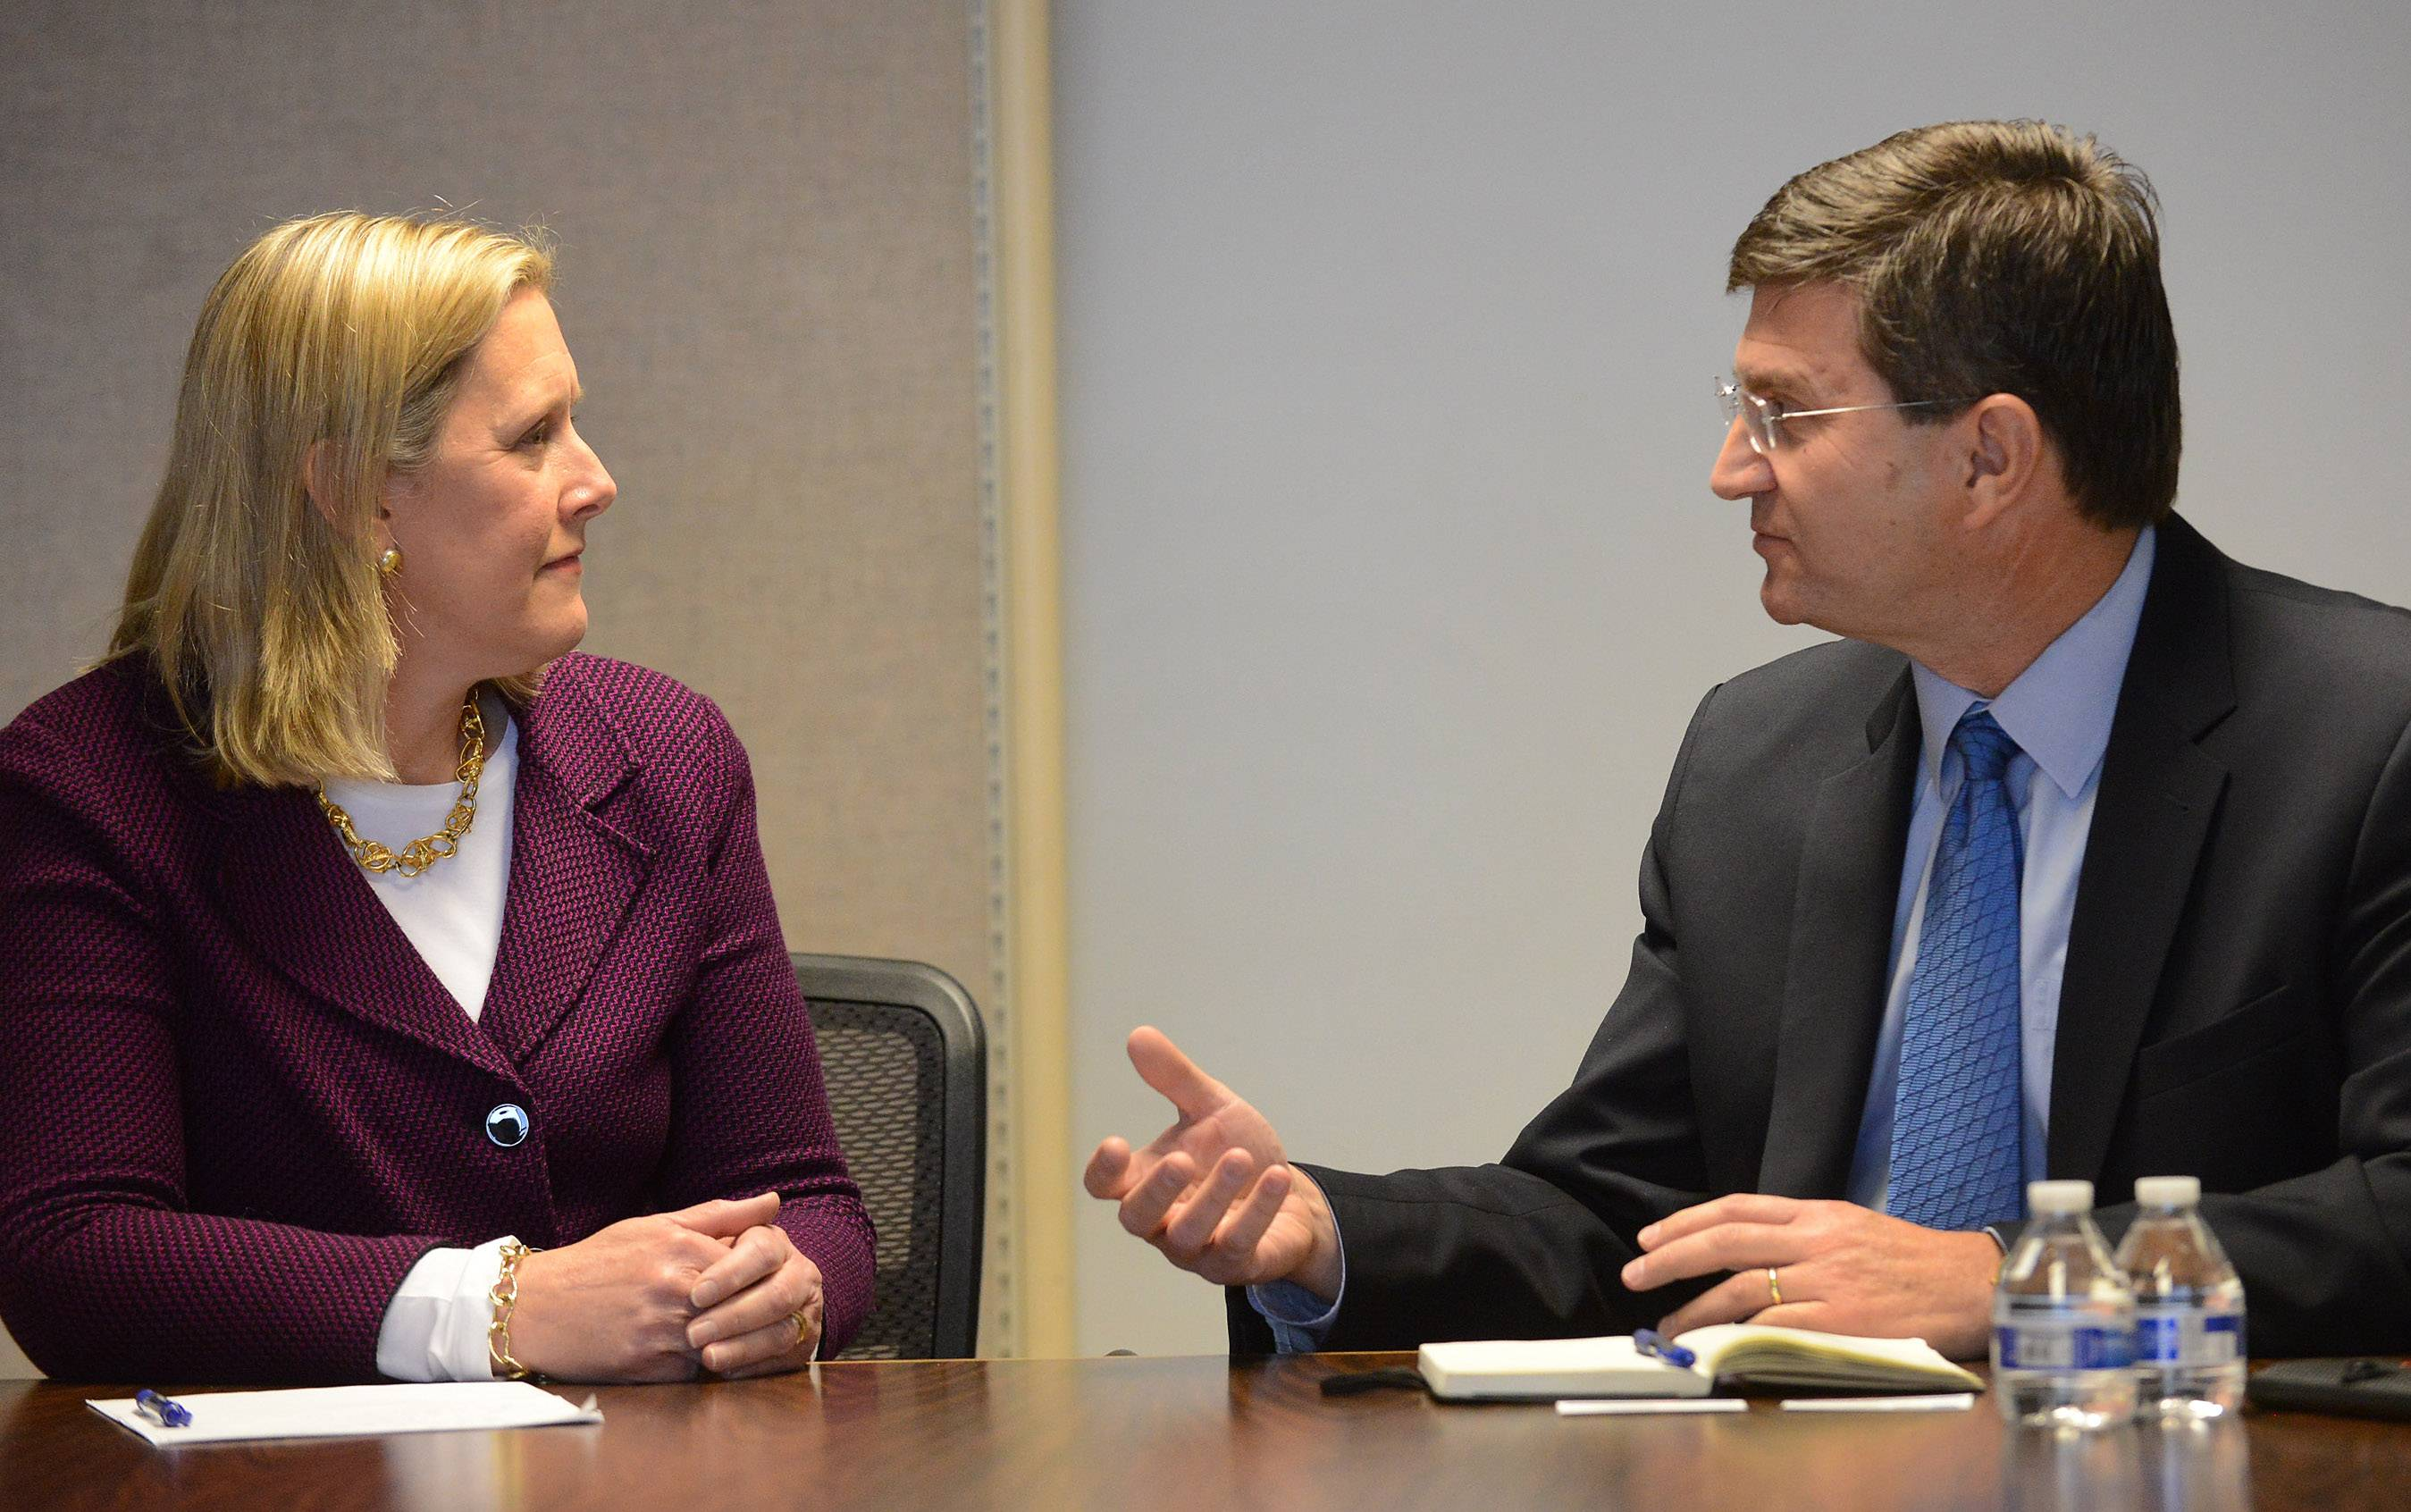 Democratic congressional candidates Nancy Rotering and Brad Schneider discussed gun control and other issues Wednesday with representatives of the Daily Herald Editorial Board.